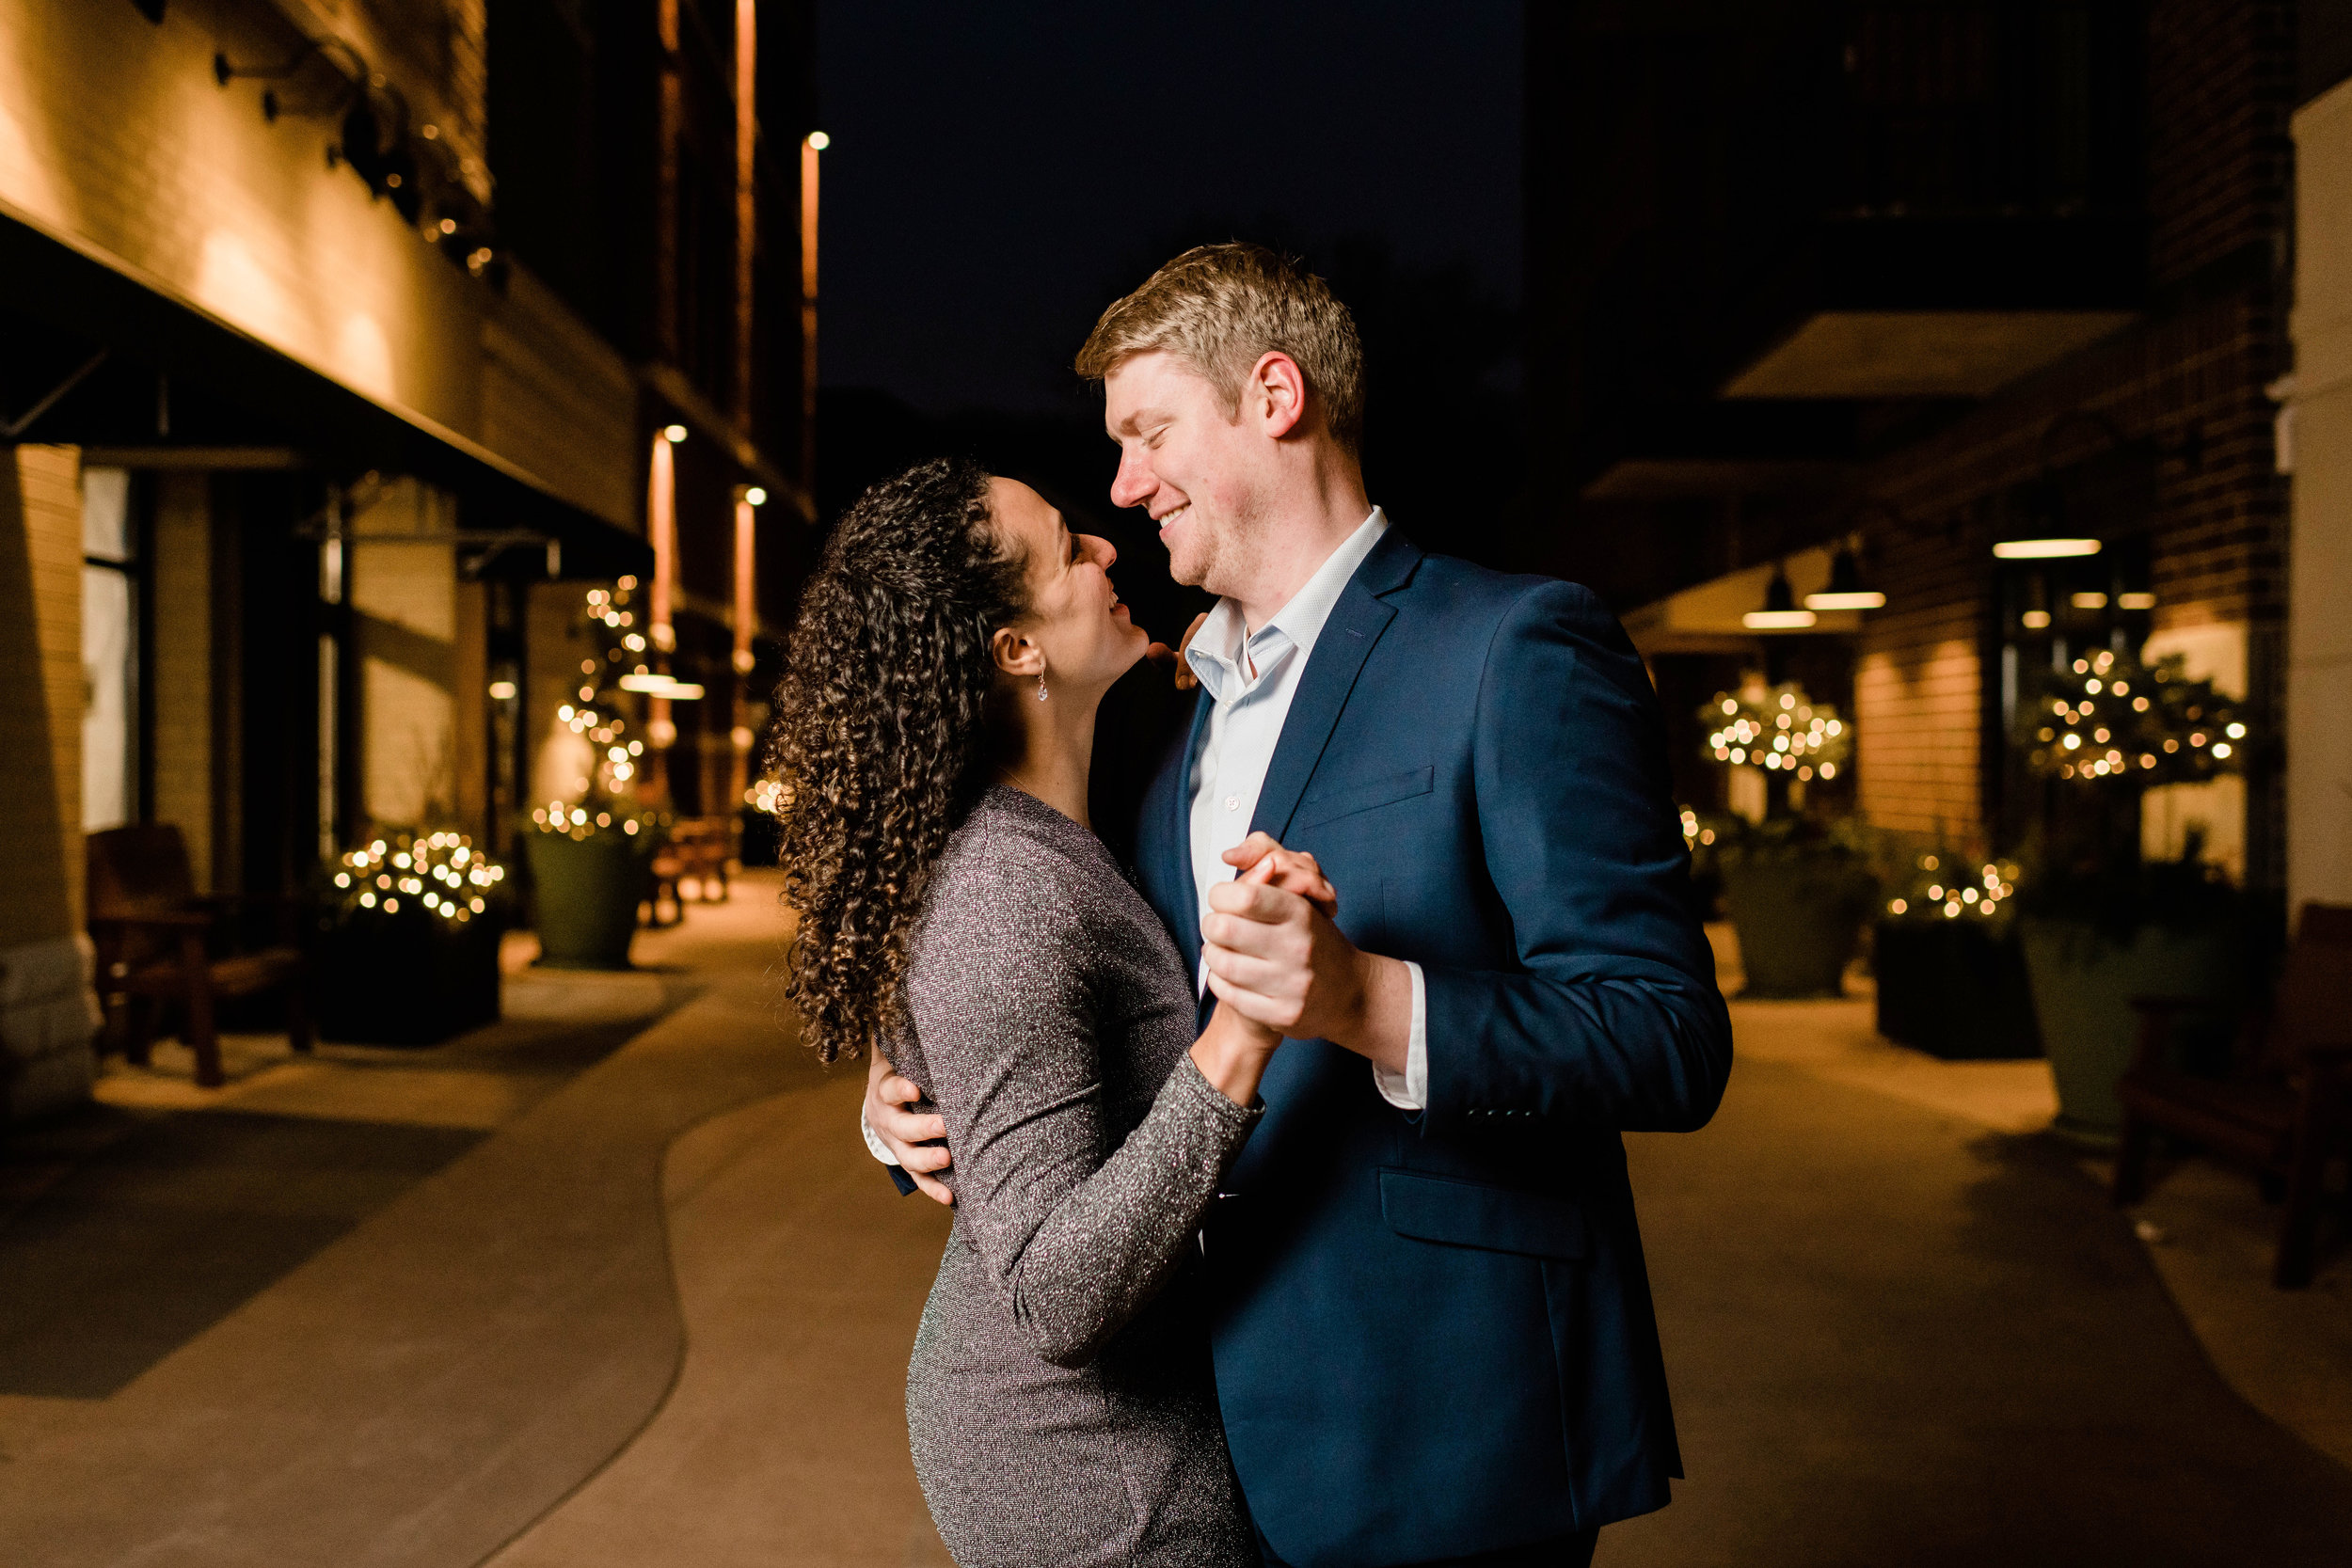 Engaged couple dancing in the streetlights